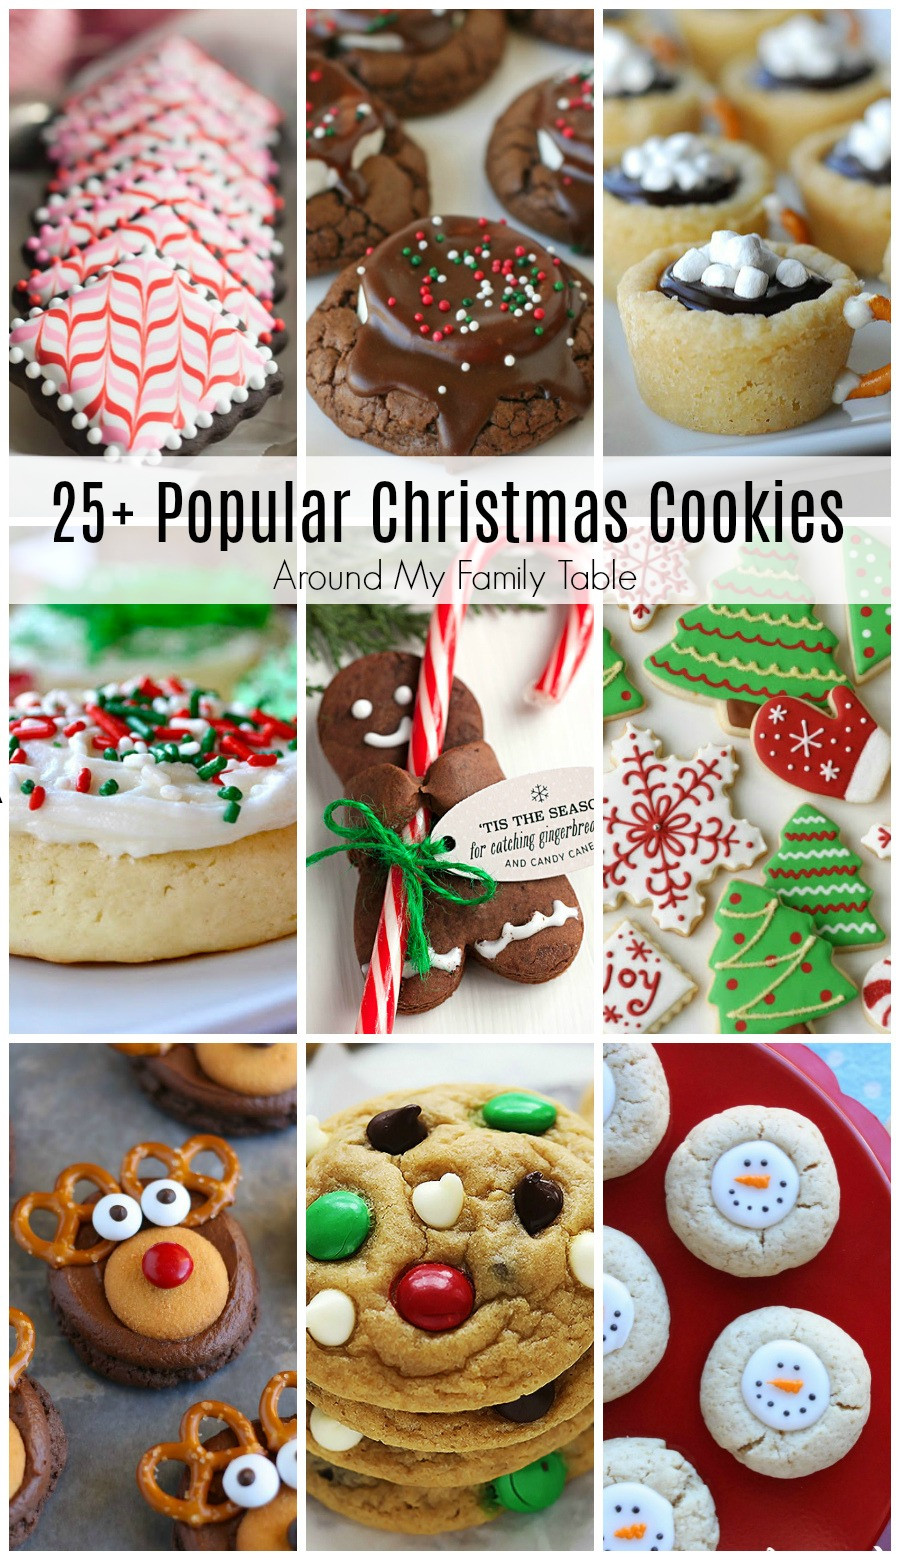 Popular Christmas Cookies Recipes  Most Popular Christmas Cookie Recipes Around My Family Table